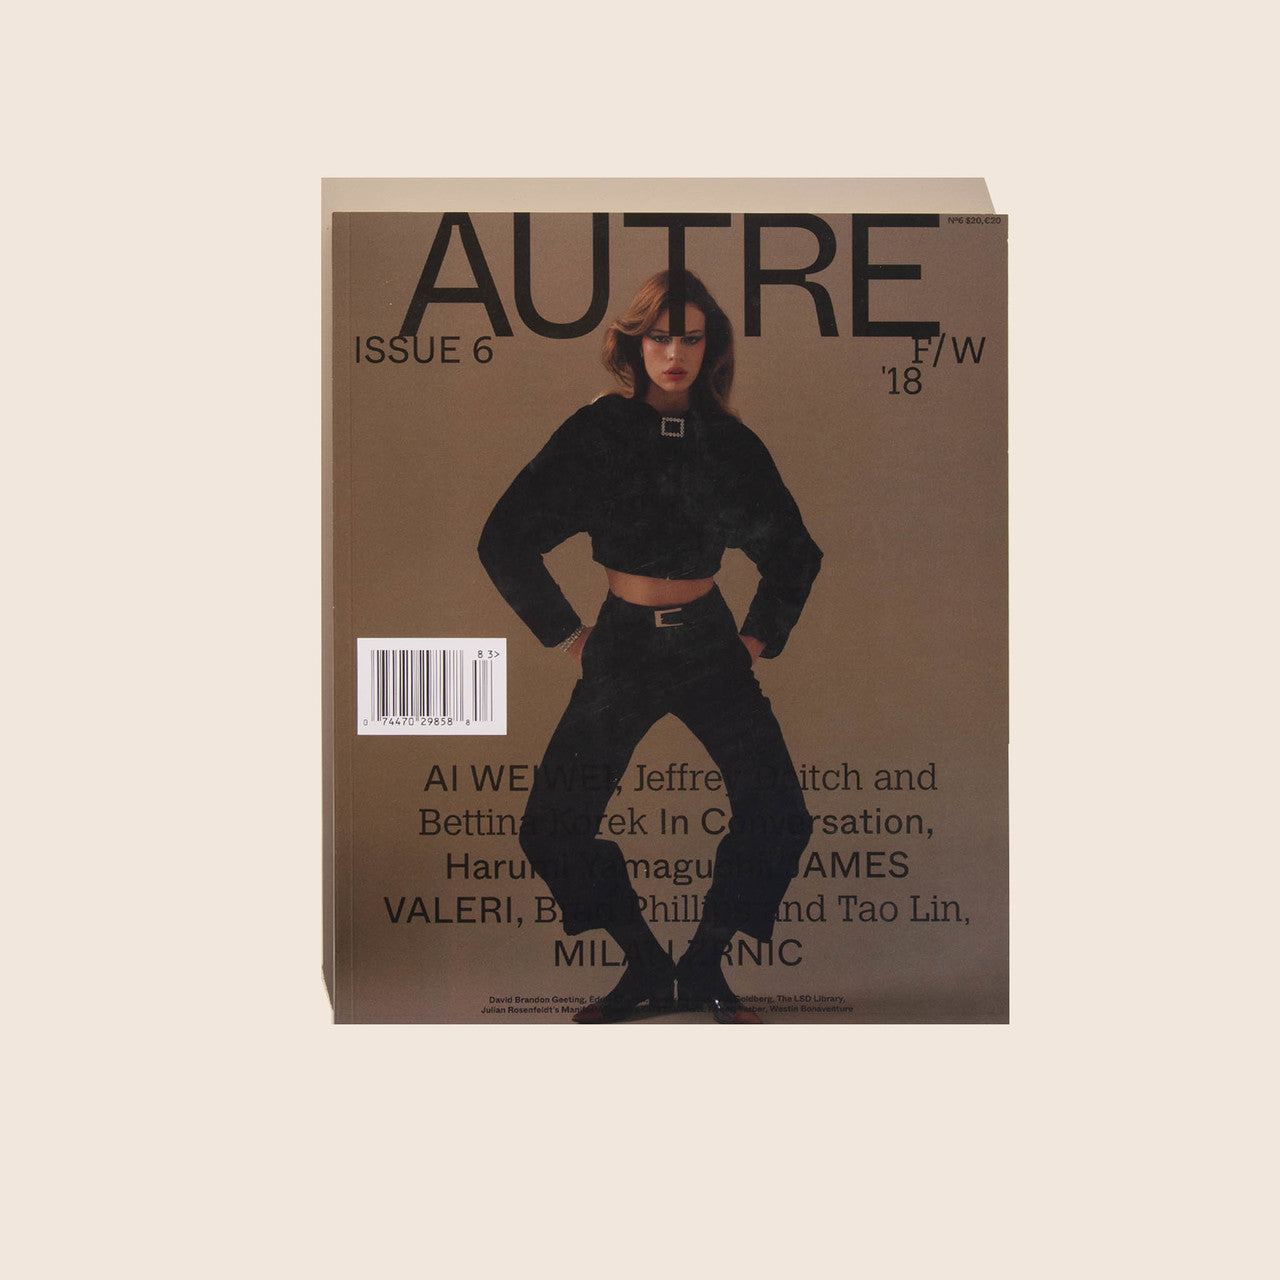 Autre - Issue No. 6 - A Manual For Culture, available at LCD